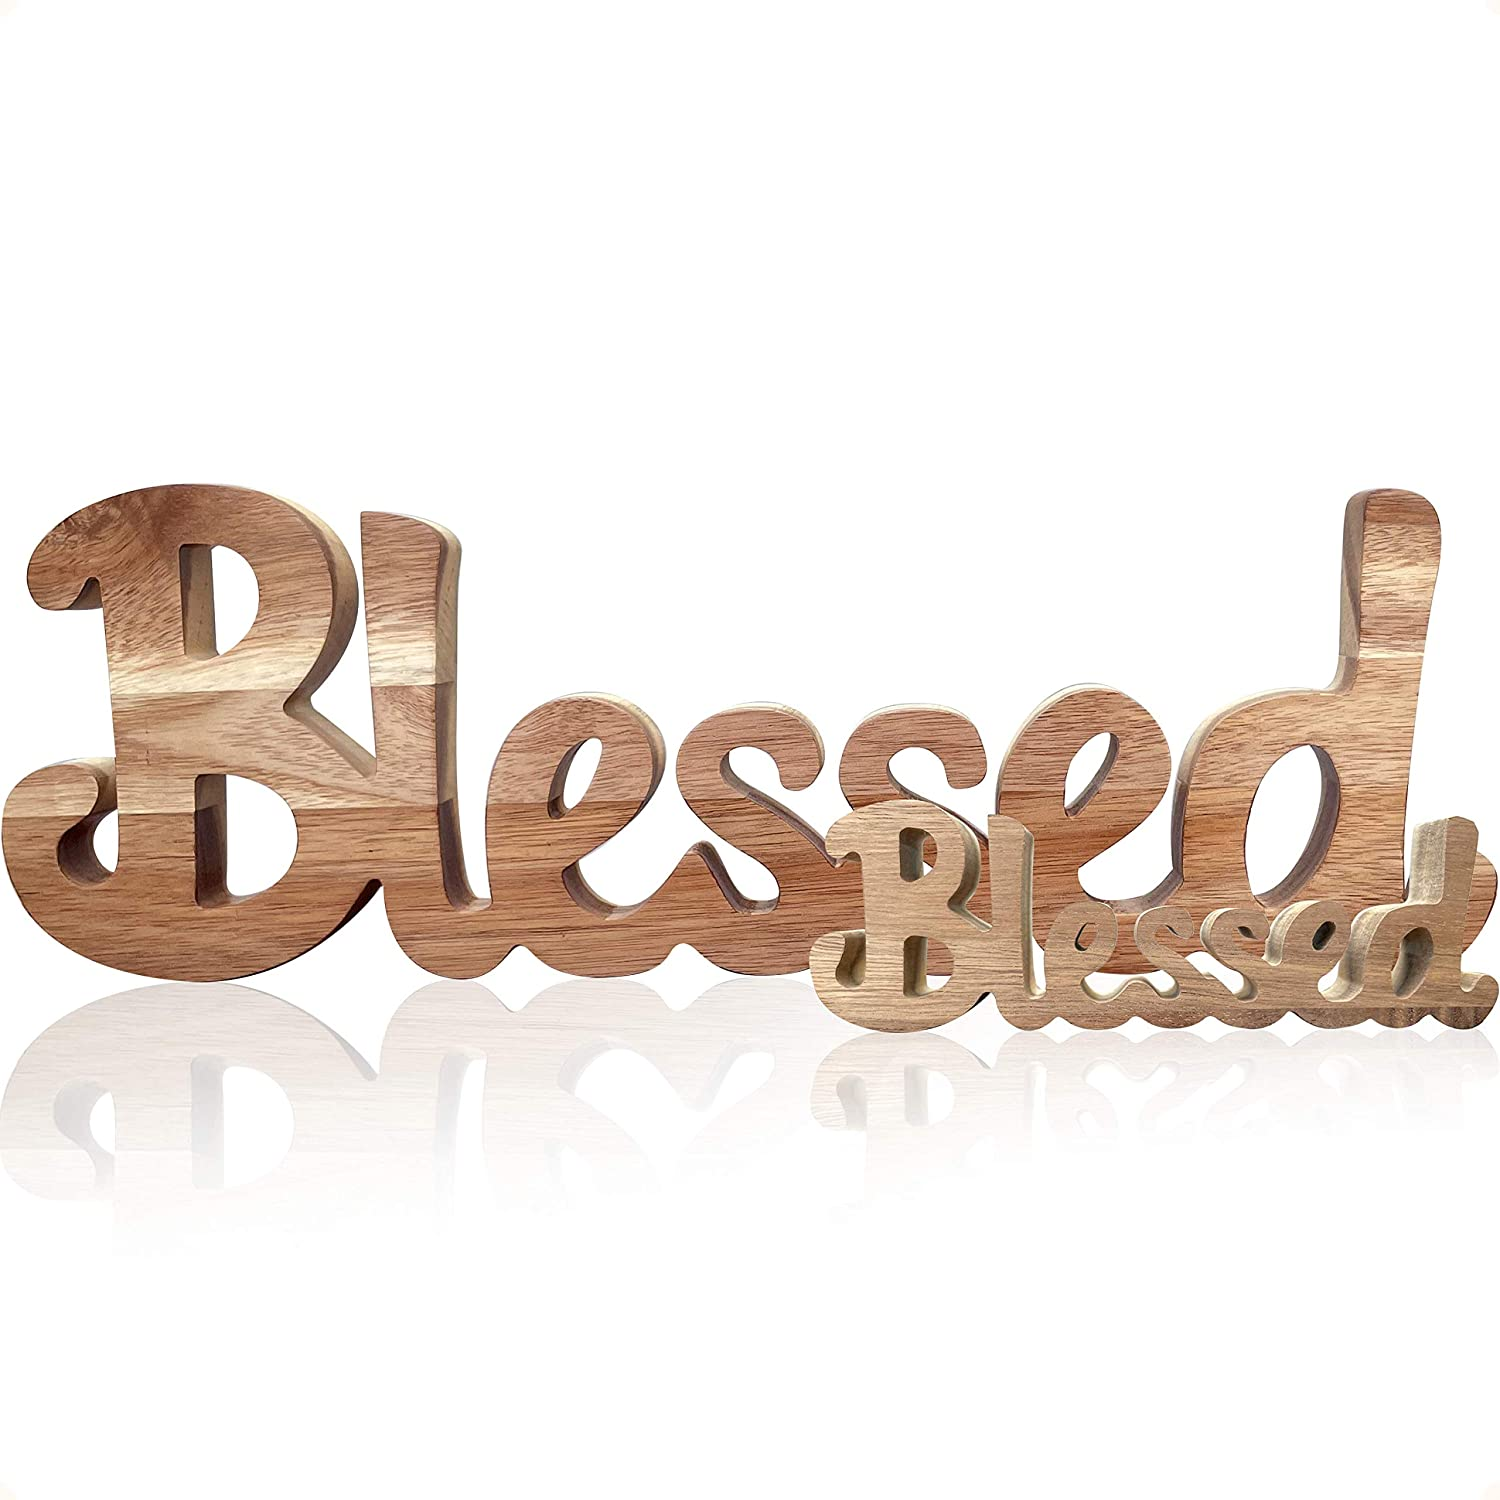 Blessed Signs For Home Decor Simply Cutout Blessed Sign Farmhouse Decorations | Farmhouse Table Decor | Shelf Decor Accents | Wall Art For Living Room Wall Decor | House Warming Presents For New Home